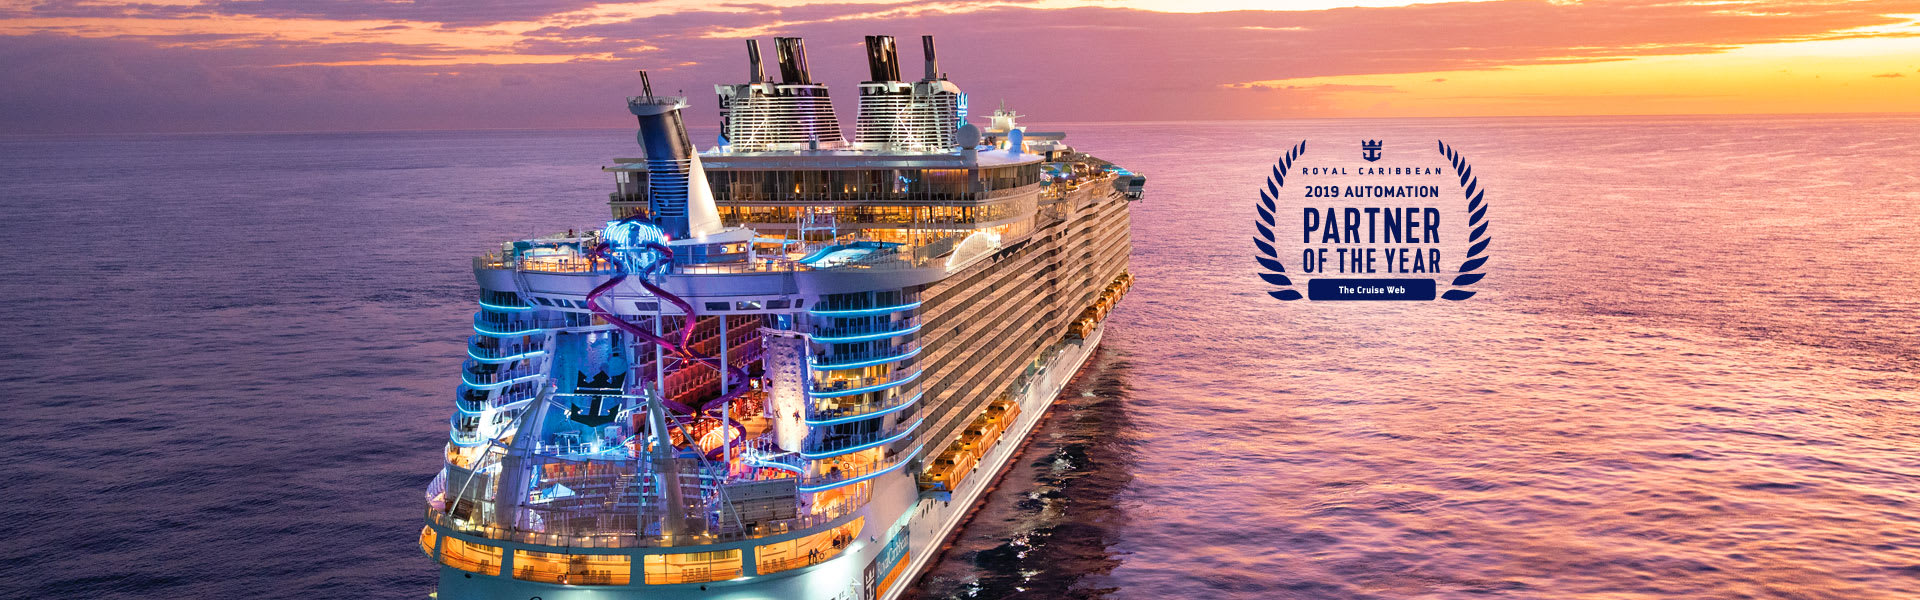 The Cruise Web is Royal Caribbean's 2019 Automation Partner of the Year